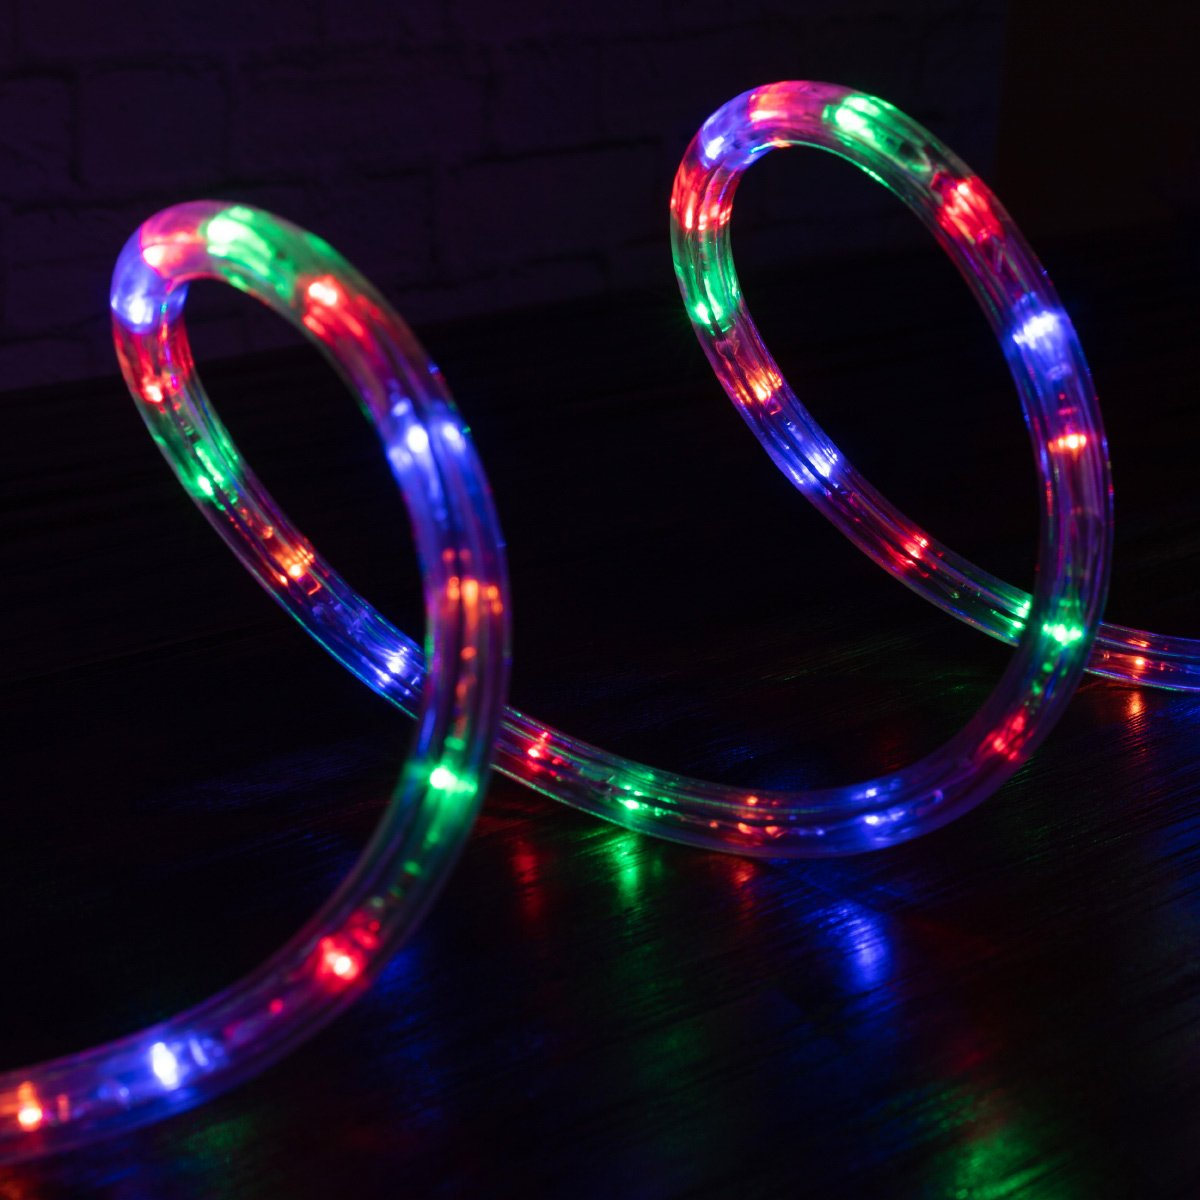 west ivory 1/2 | etl certified 25 feet mixed colors led rope lights 2 wire  accent holiday christmas